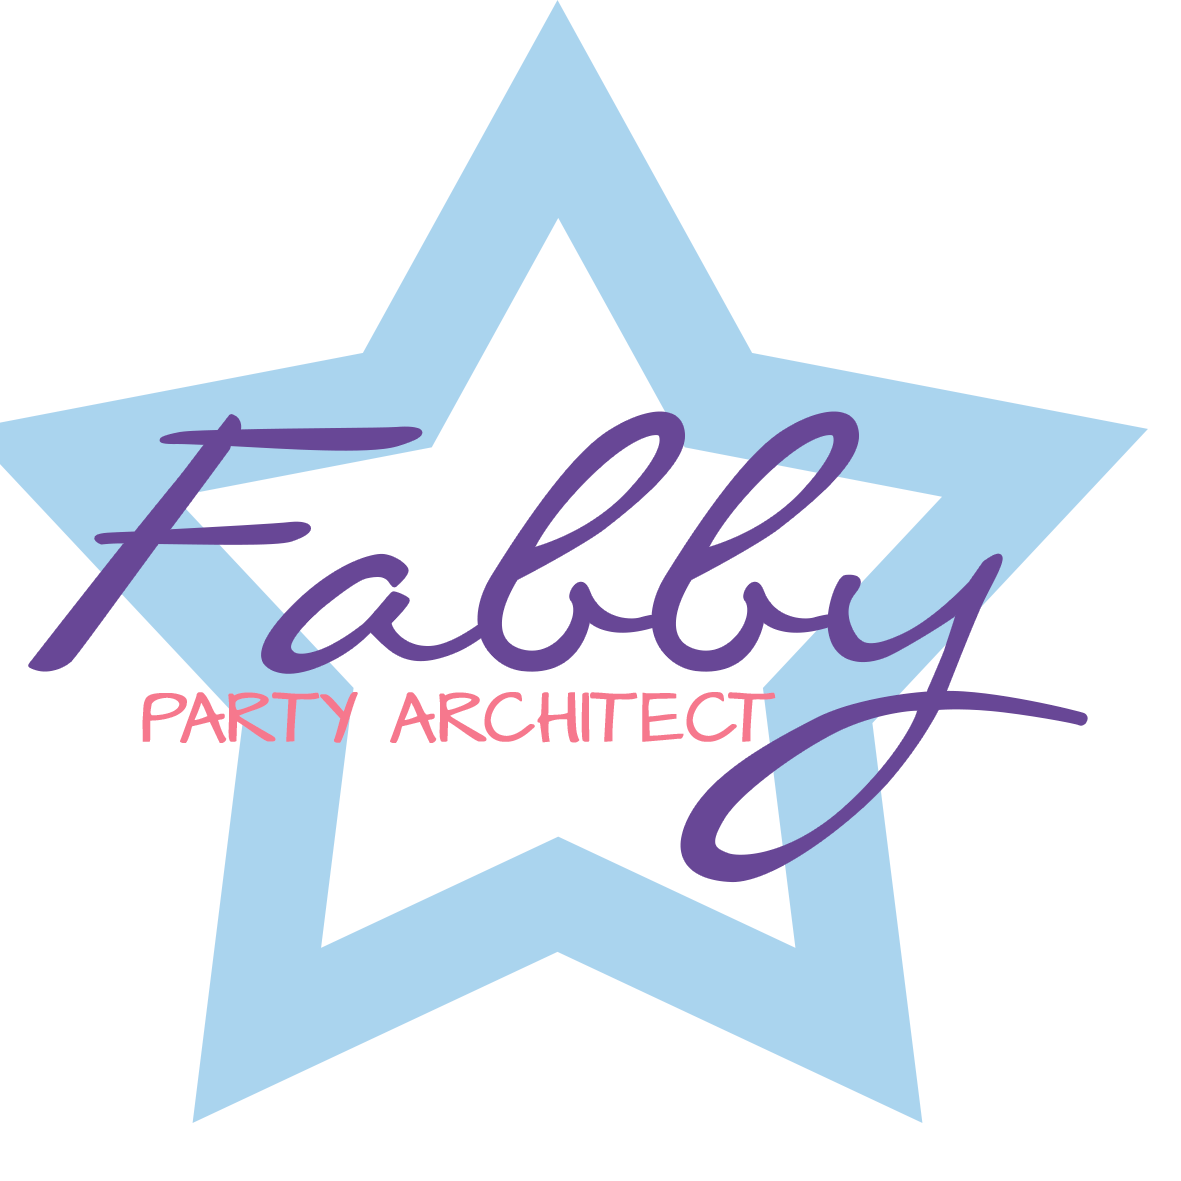 Fabby - Party Architect